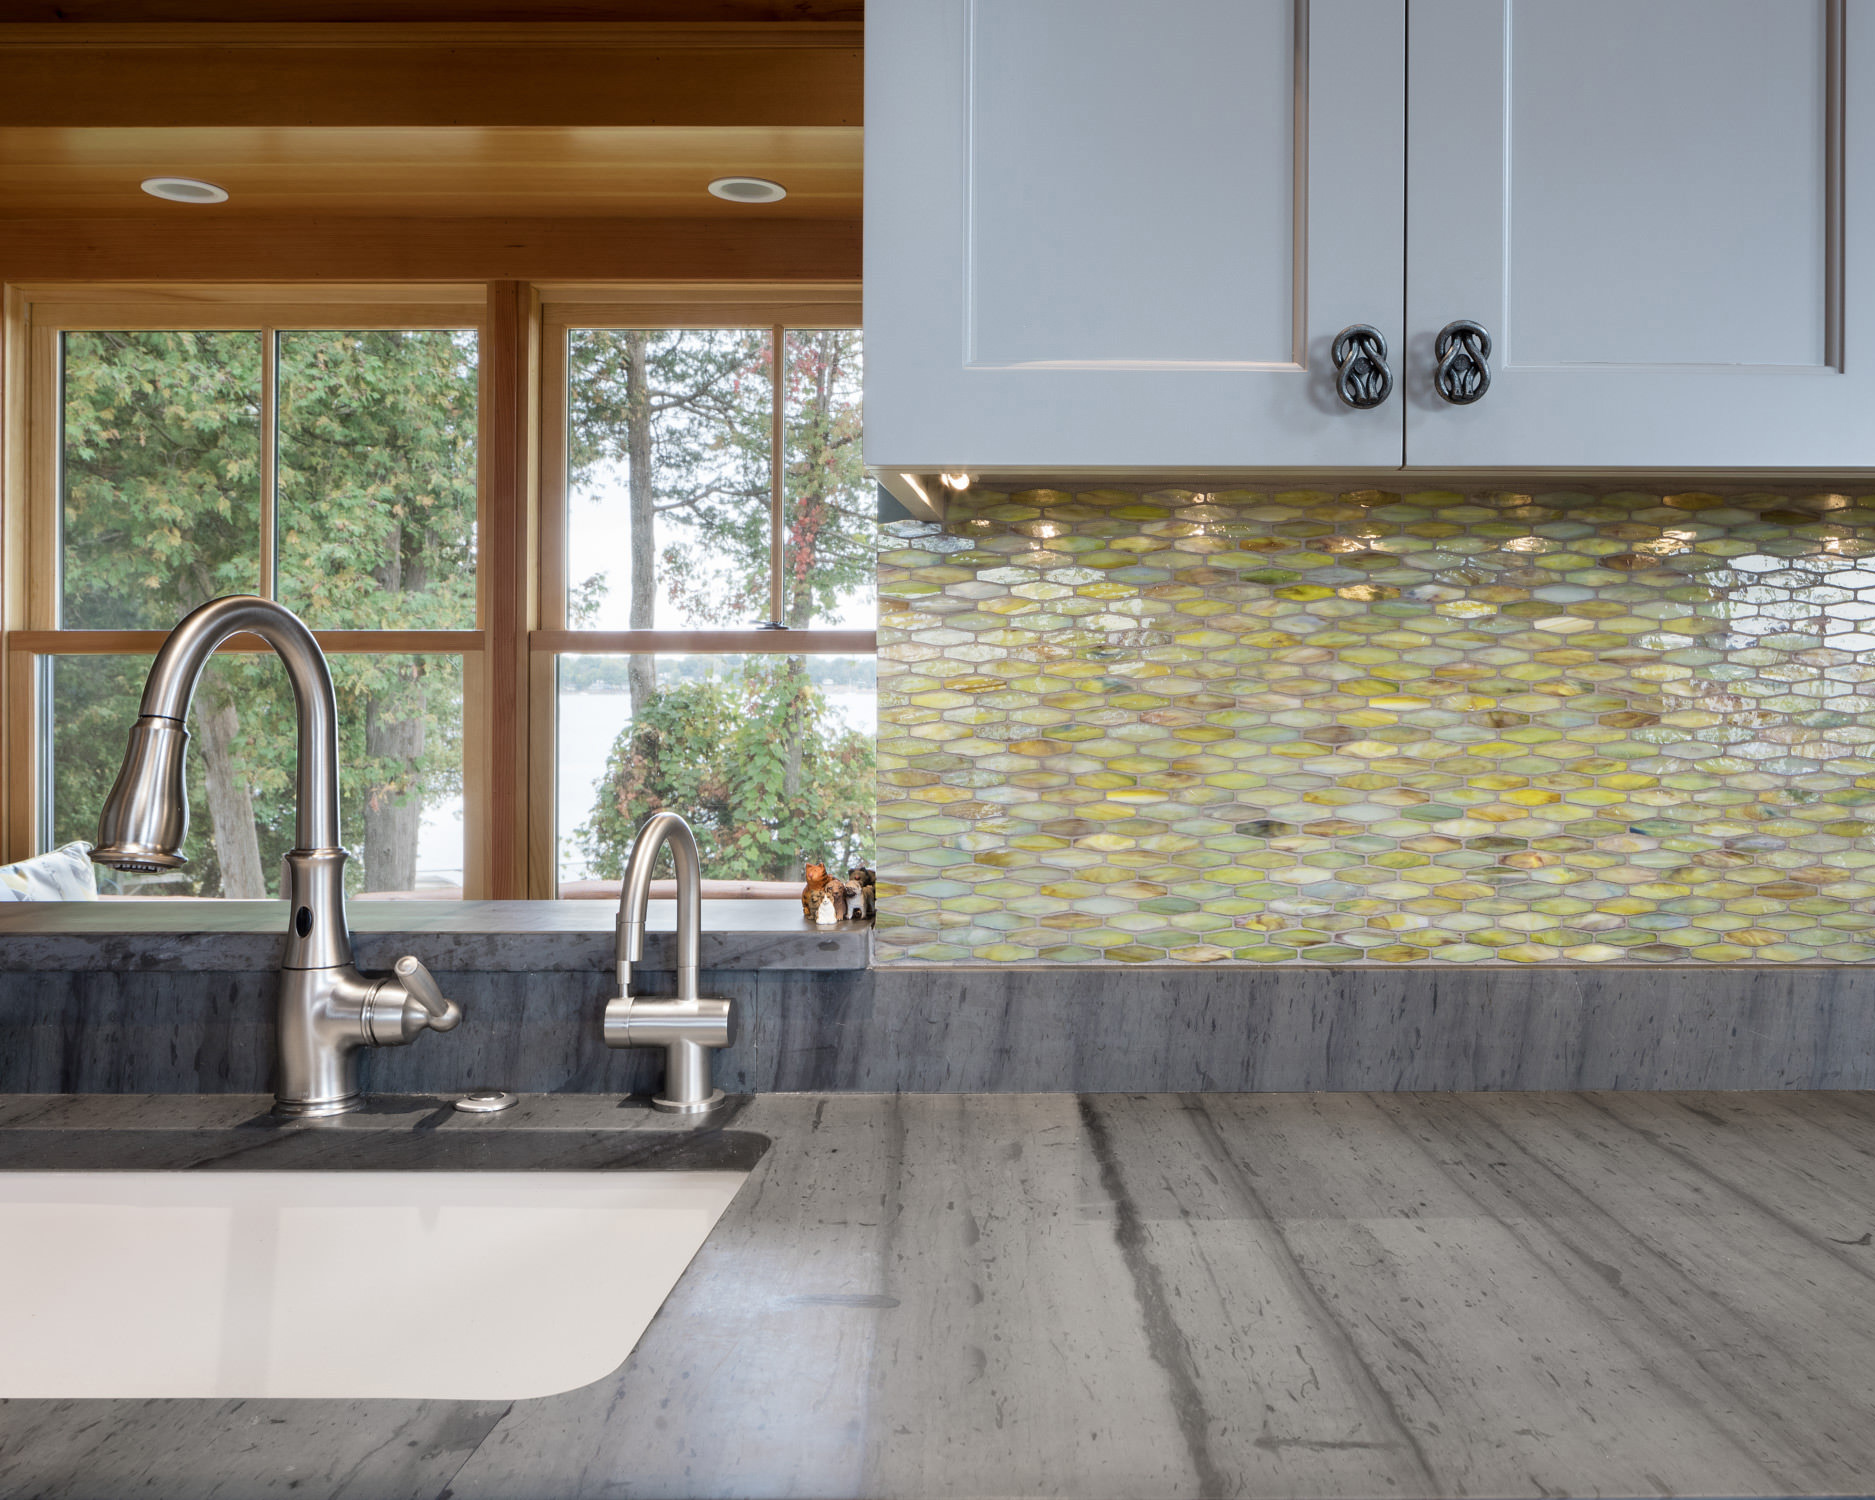 Interior architecture photo of a green glass tiled backsplash and soapstone counters in a kitchen renovation by Wiemann Lamphere Architects and photographed by Vermont photographer Stina Booth of Studio SB.,